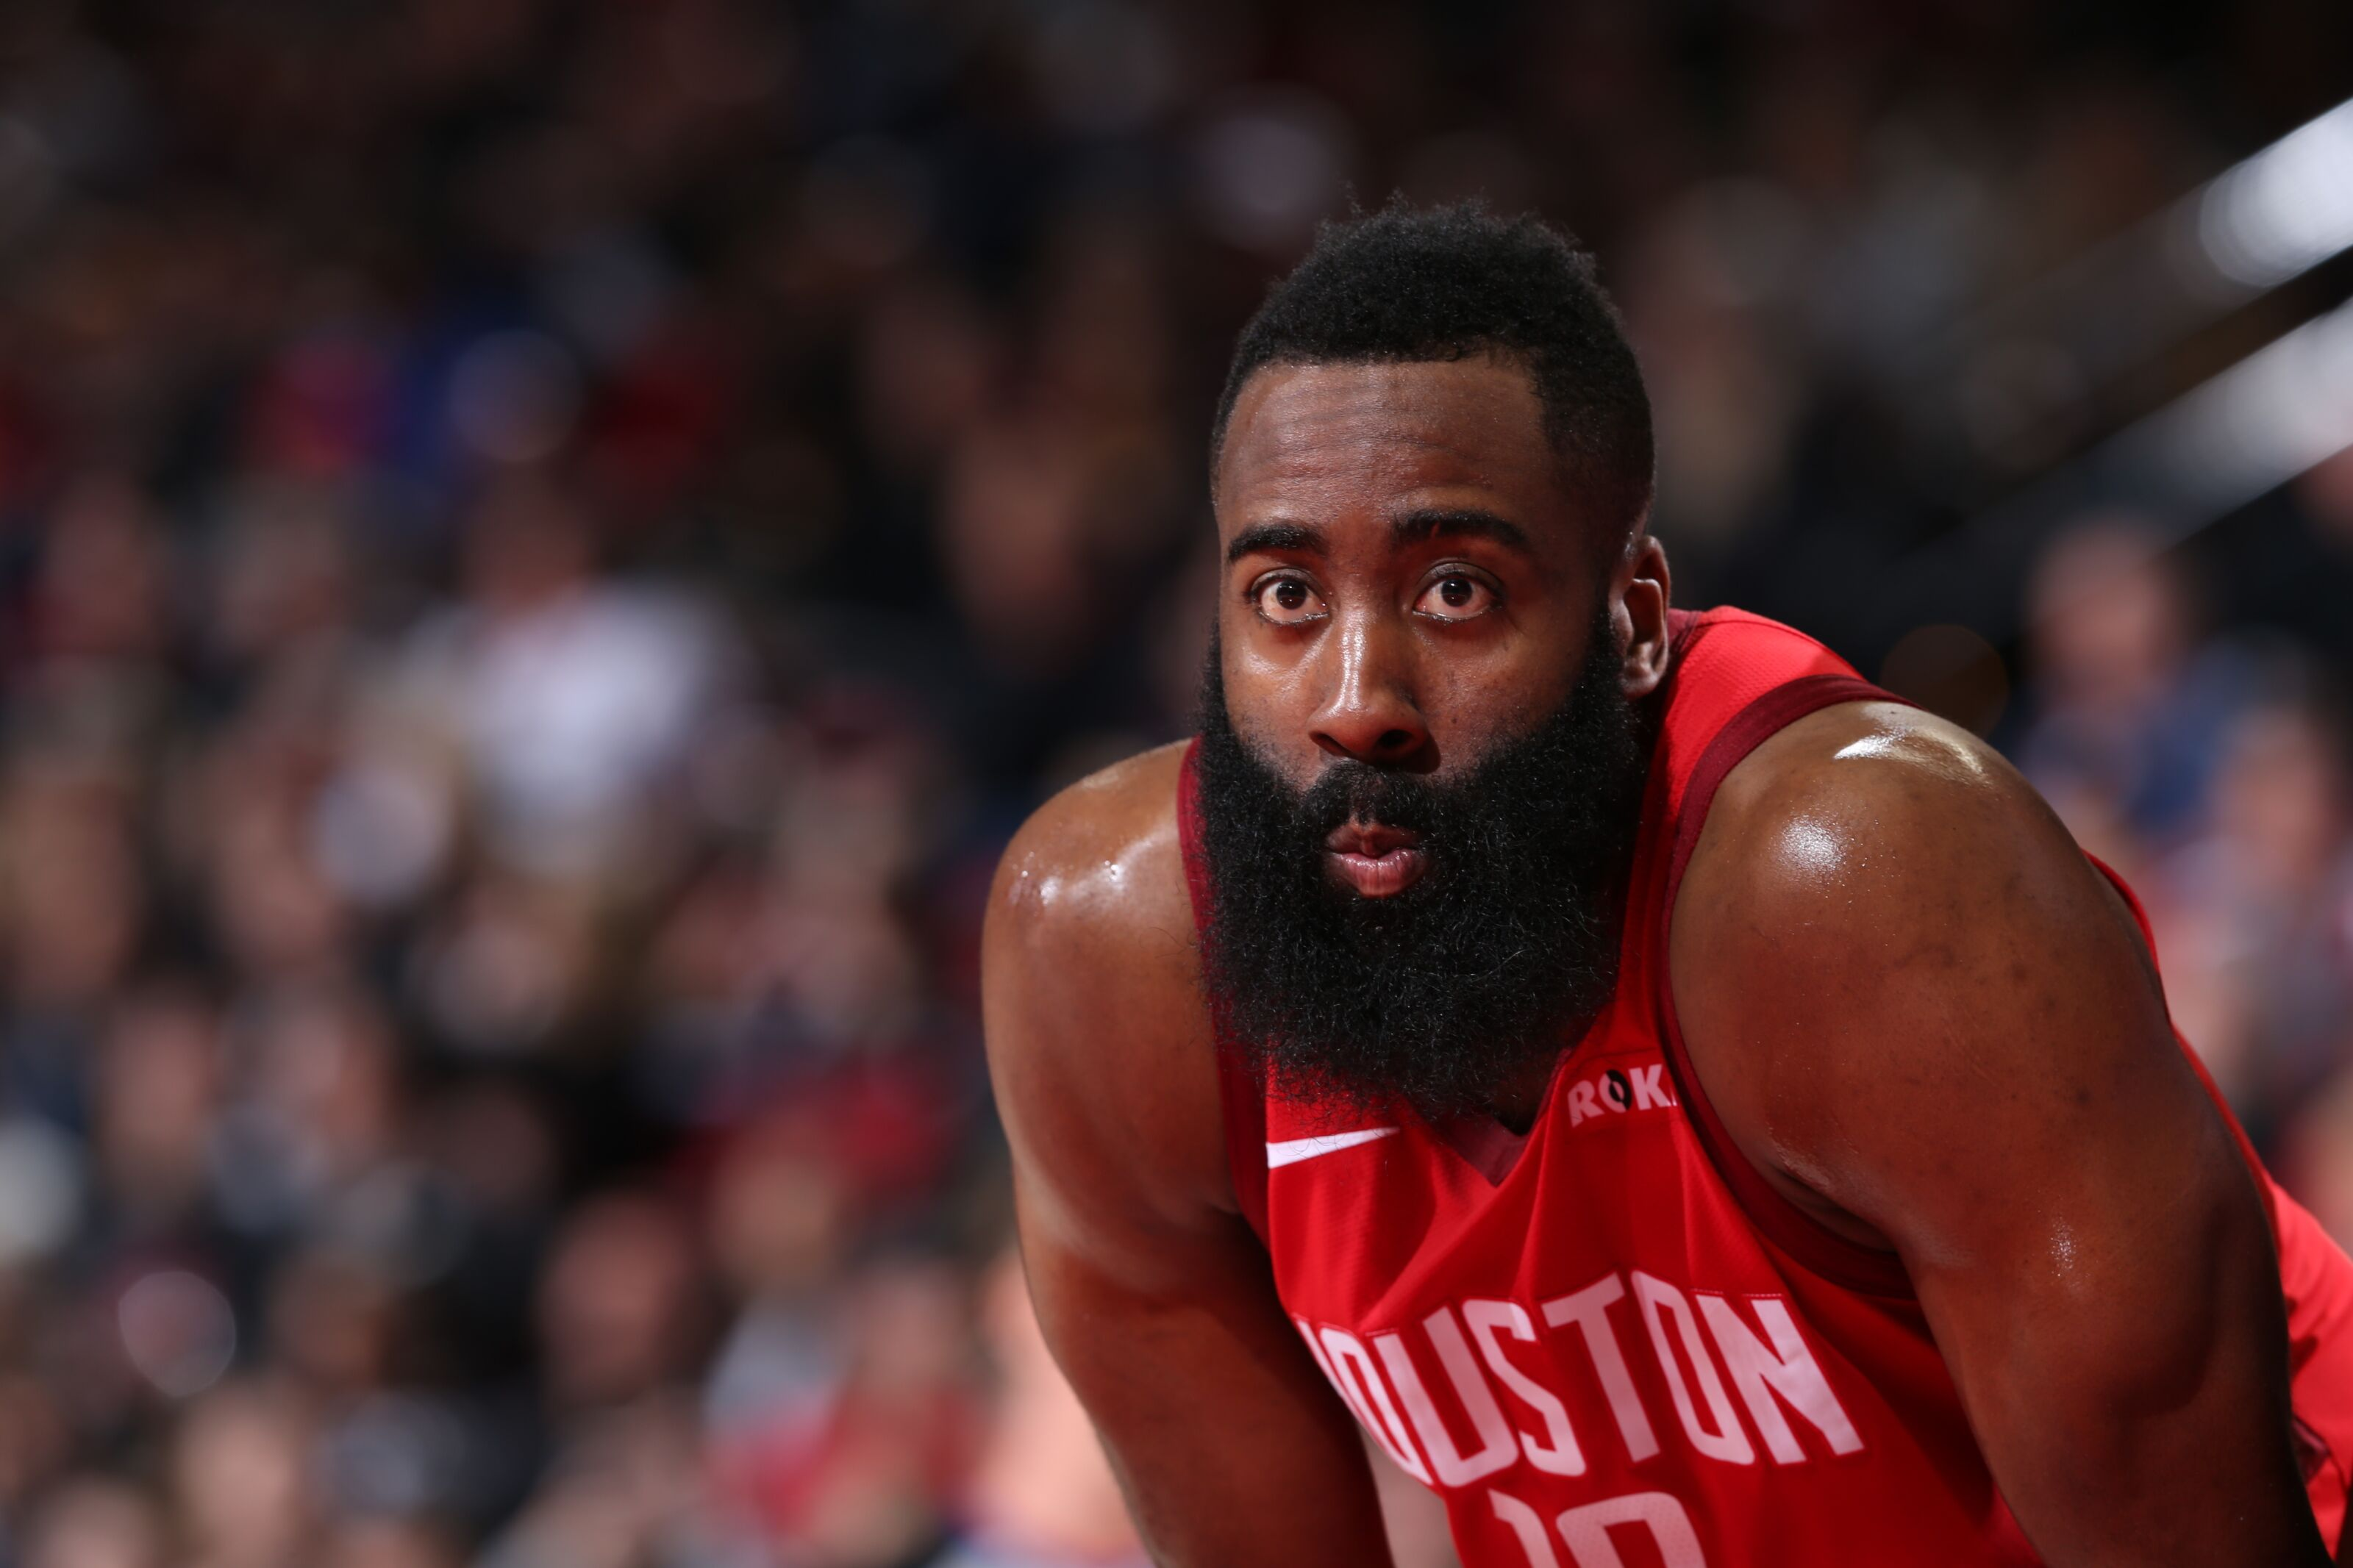 ee1696e6d8c2 James Harden s beard is safety equipment